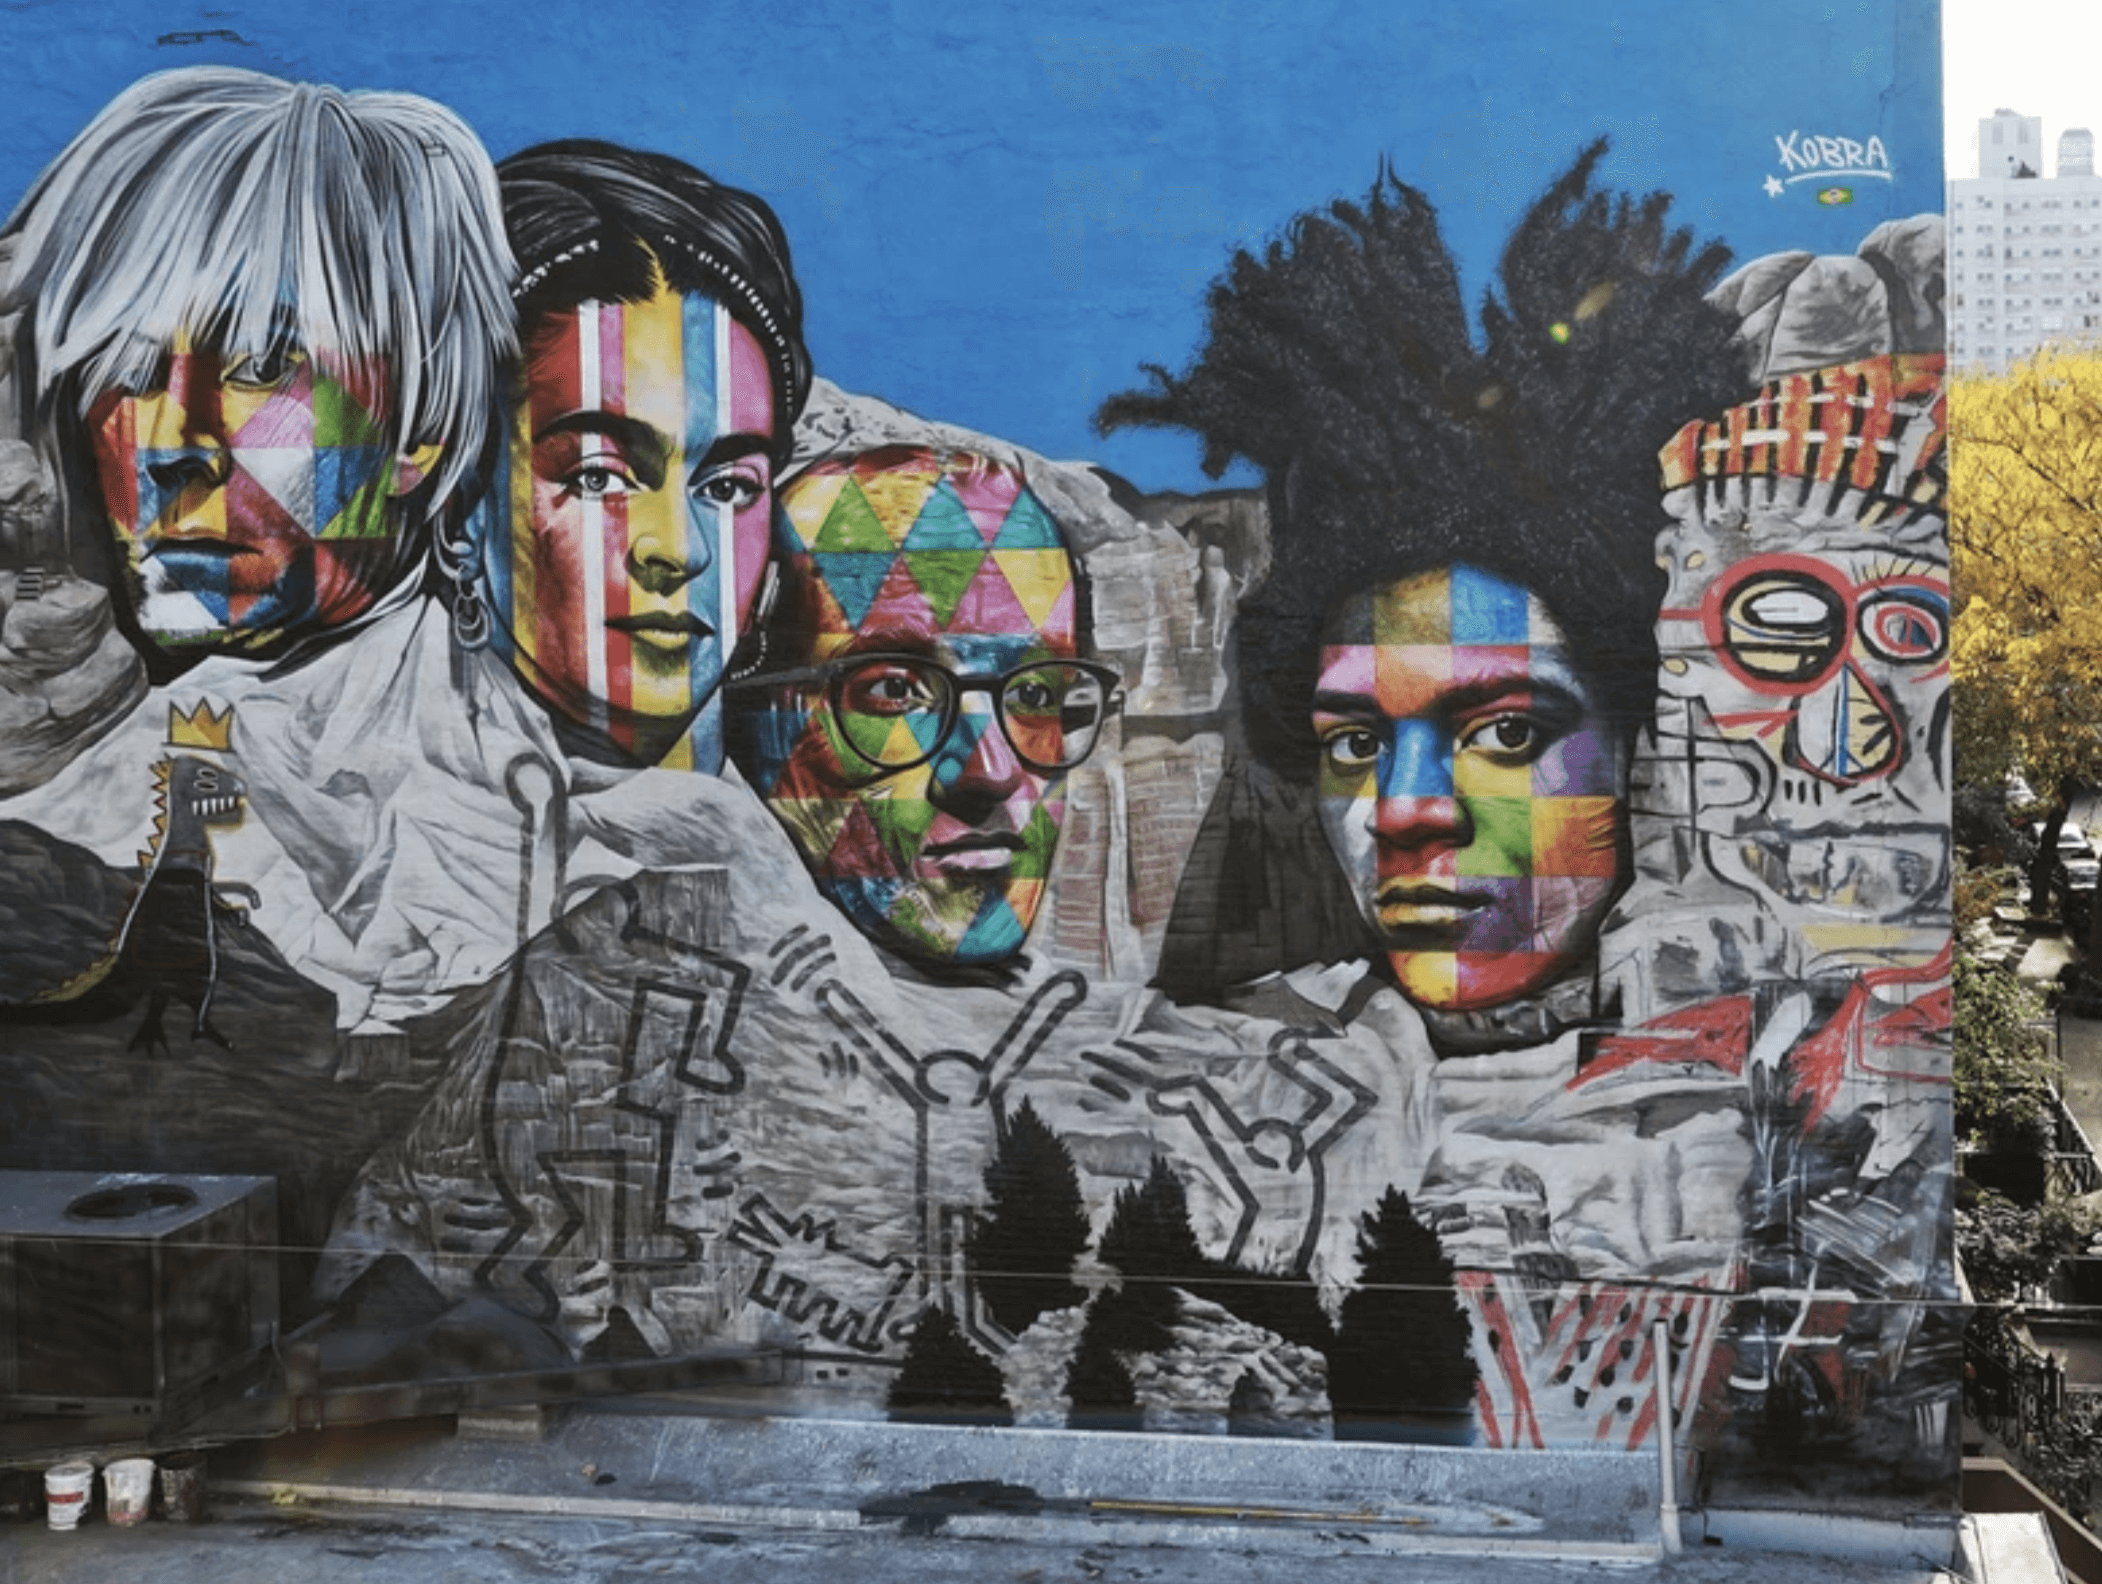 Kobra Mural Grafitti New York Mount Rushmore